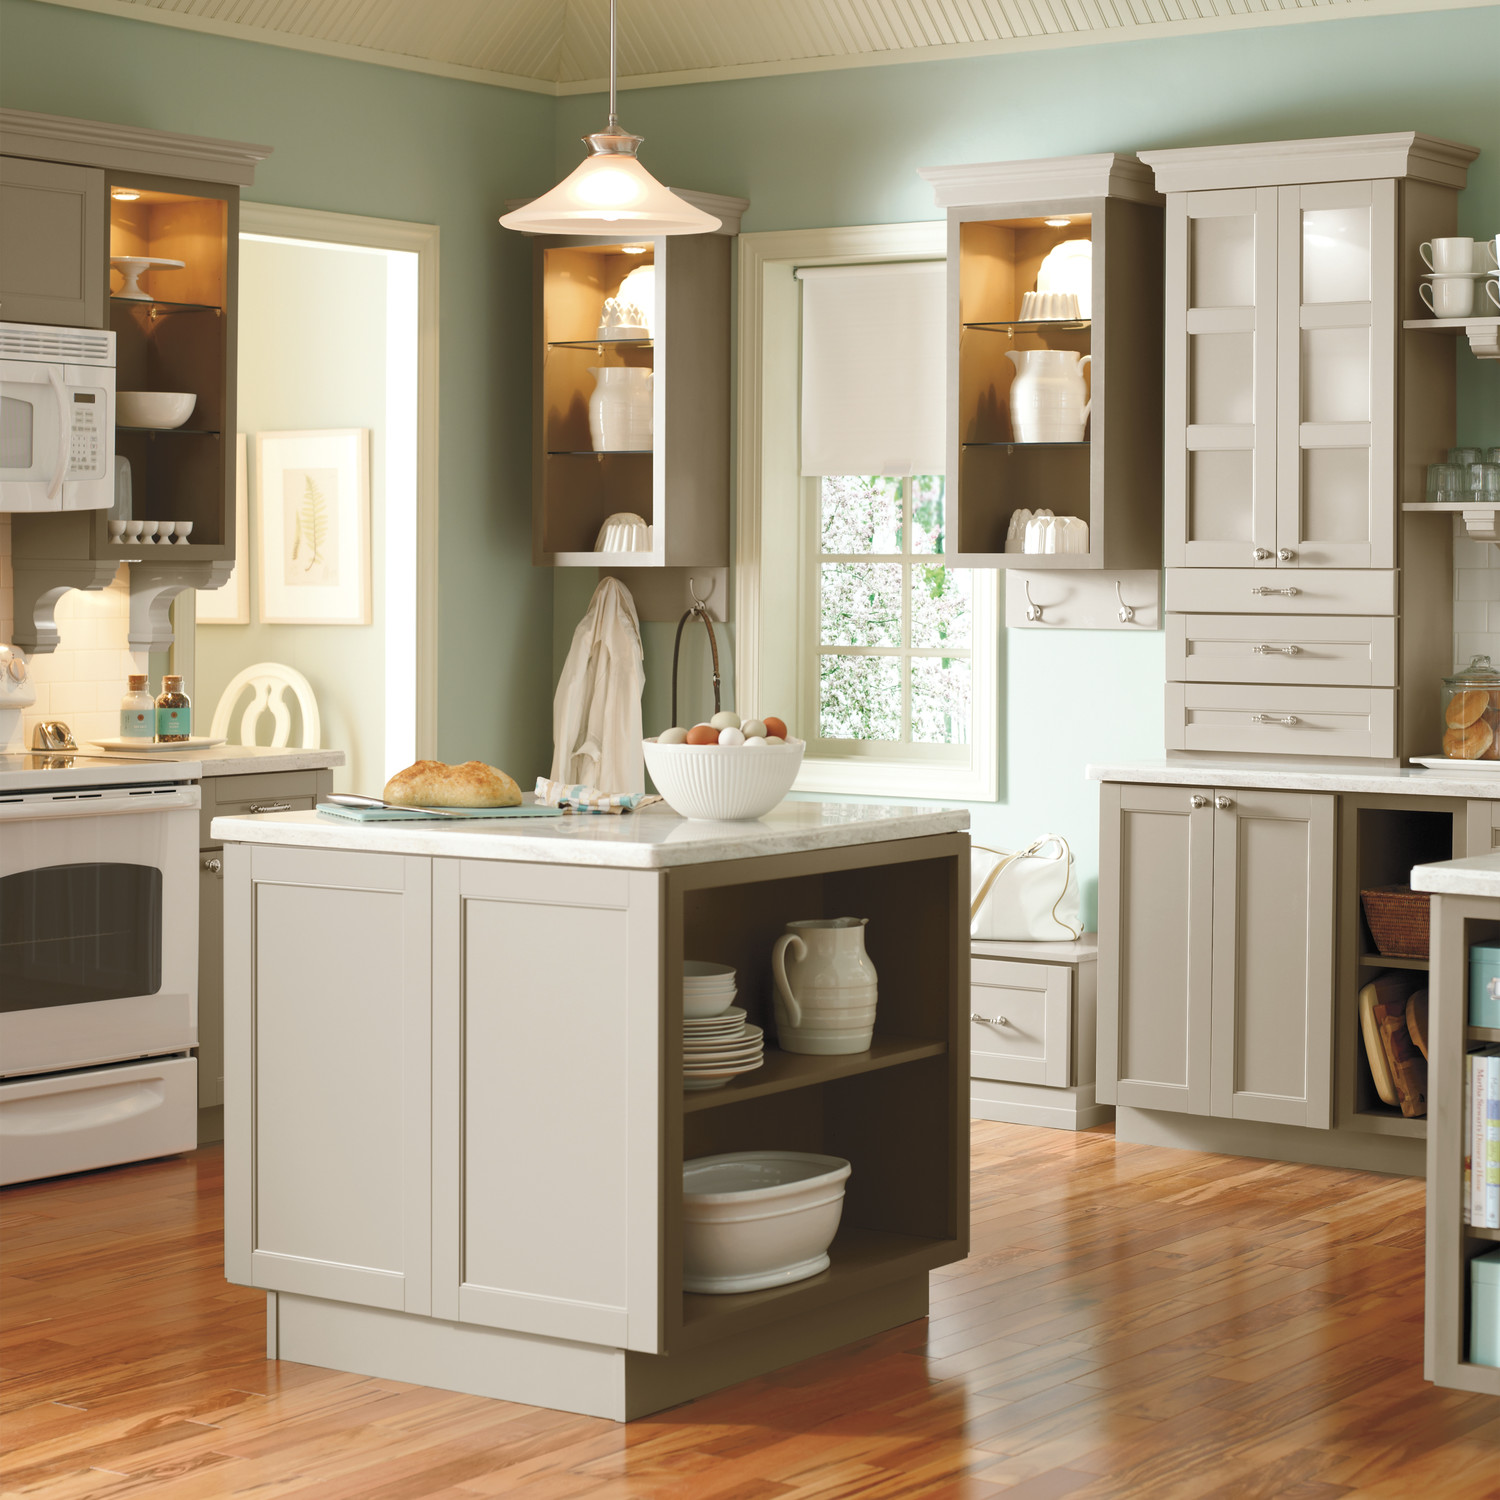 Martha Stewart Living Kitchen Designs from The Home Depot | Martha ...